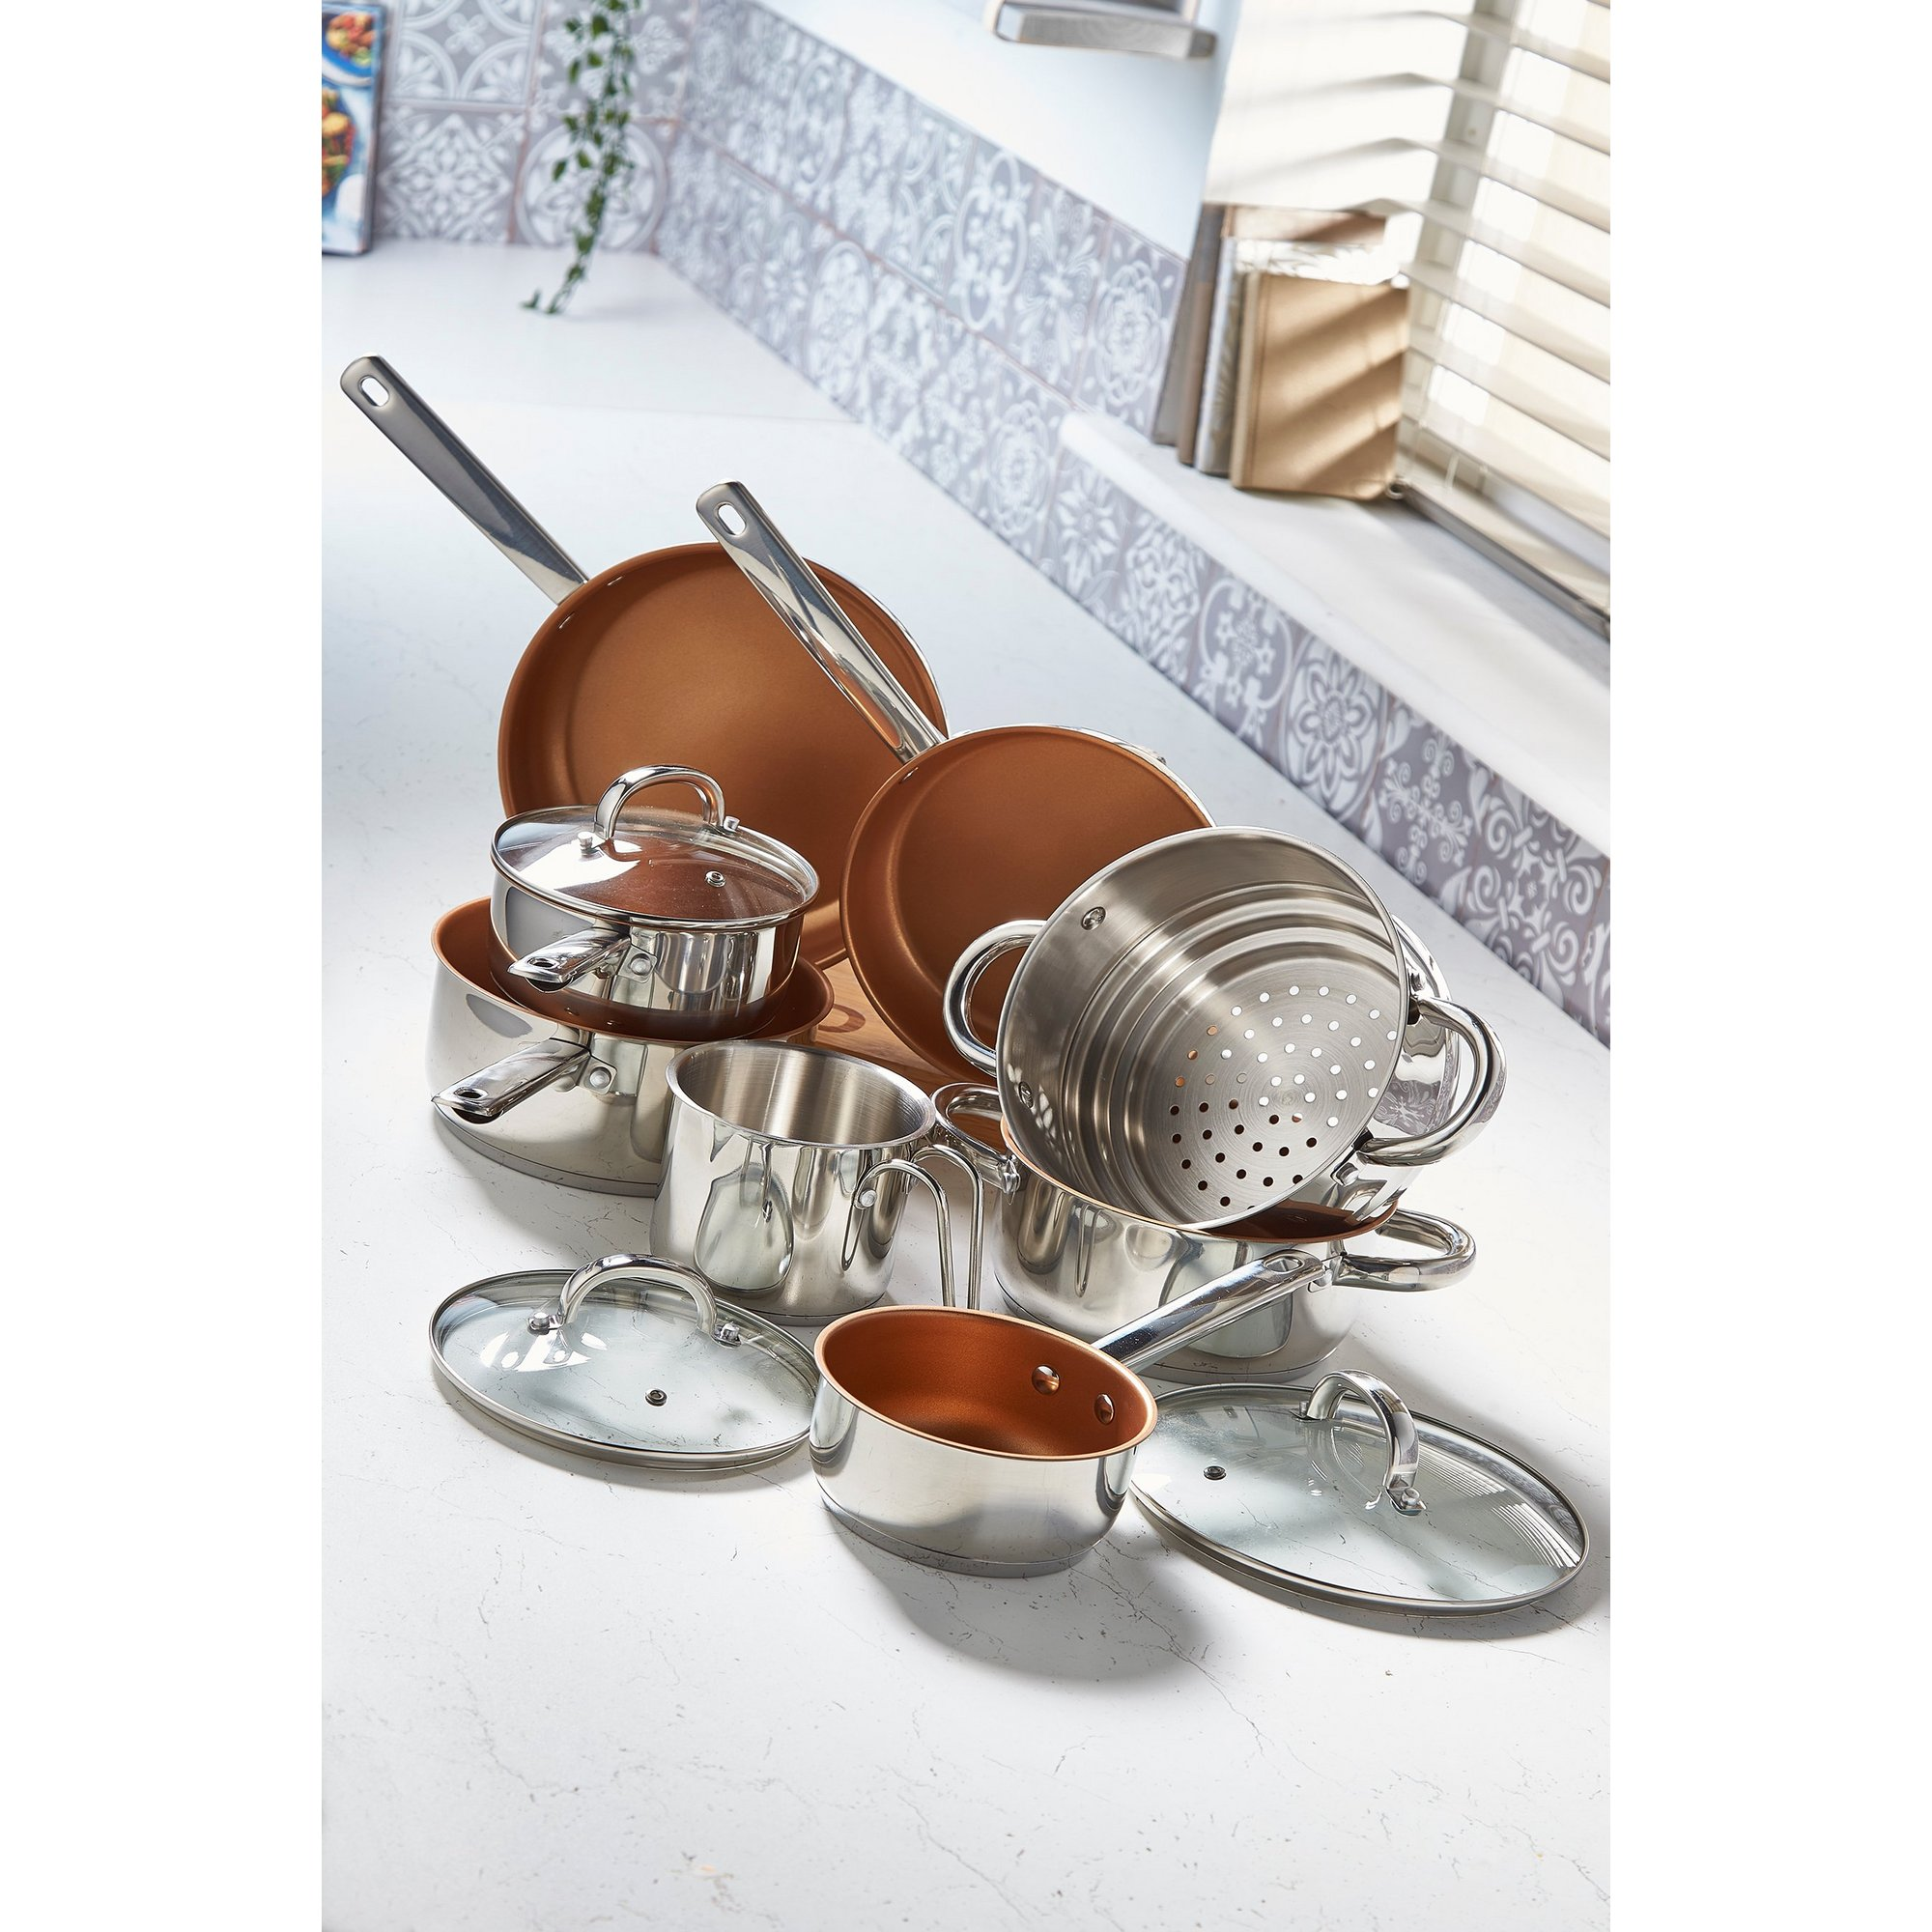 Image of 8-Piece Stainless Steel and Copper Pan Set